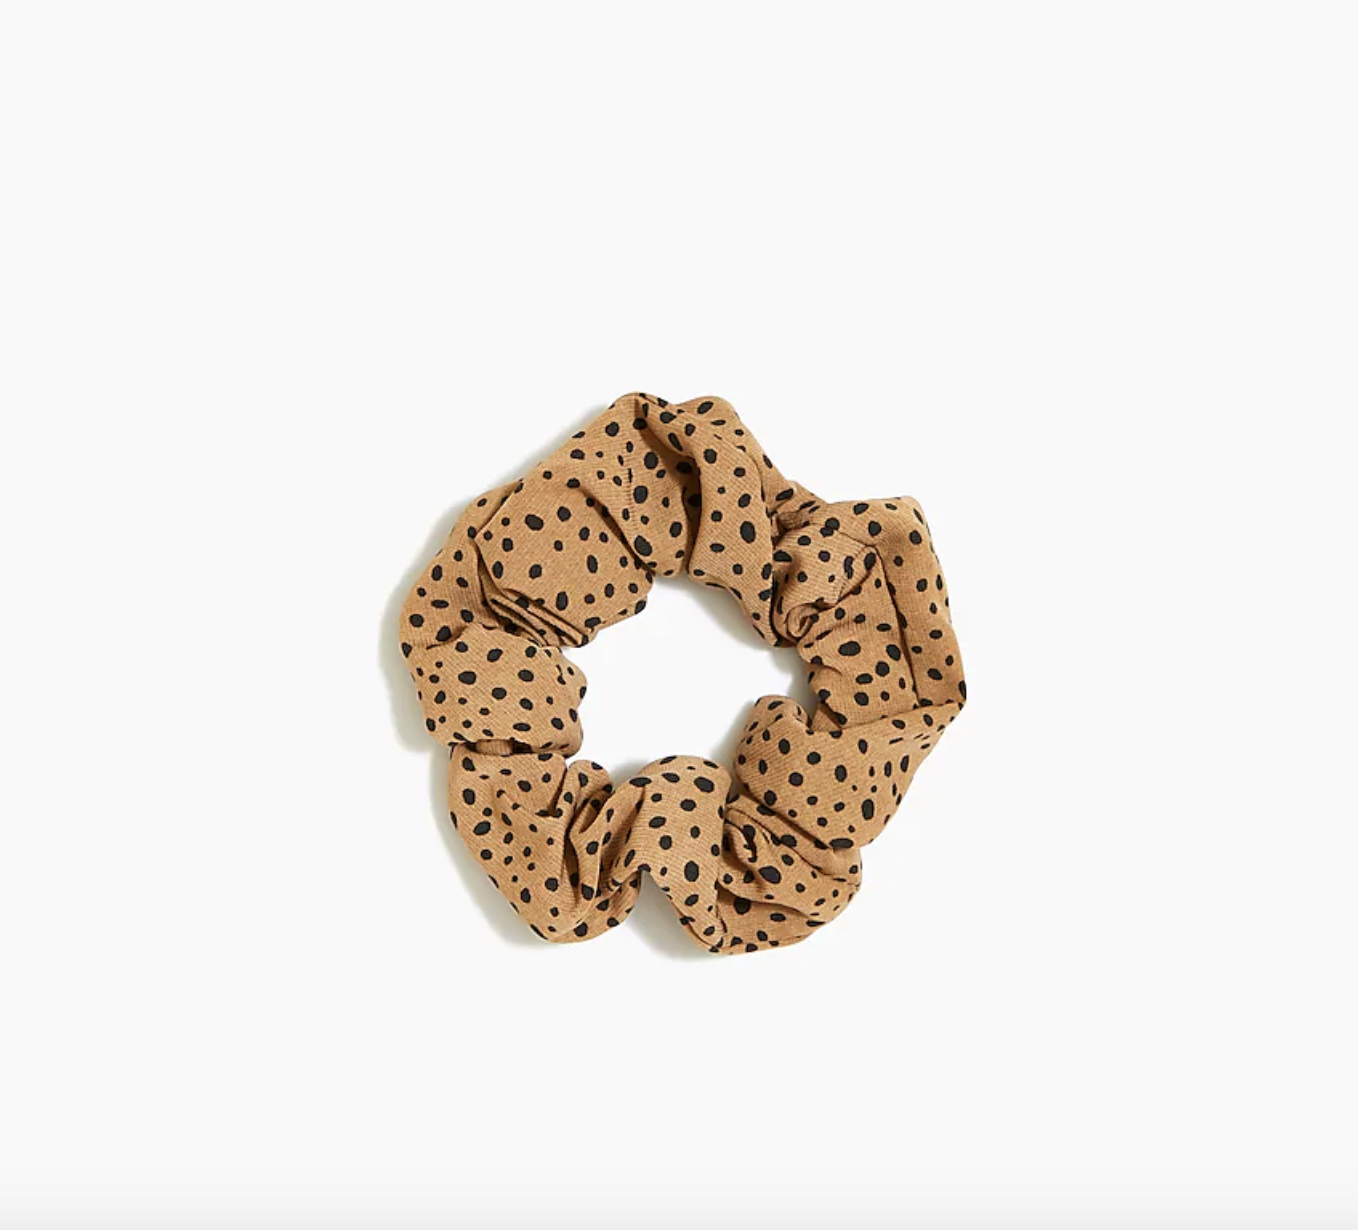 the tan scrunchie with black polka dots